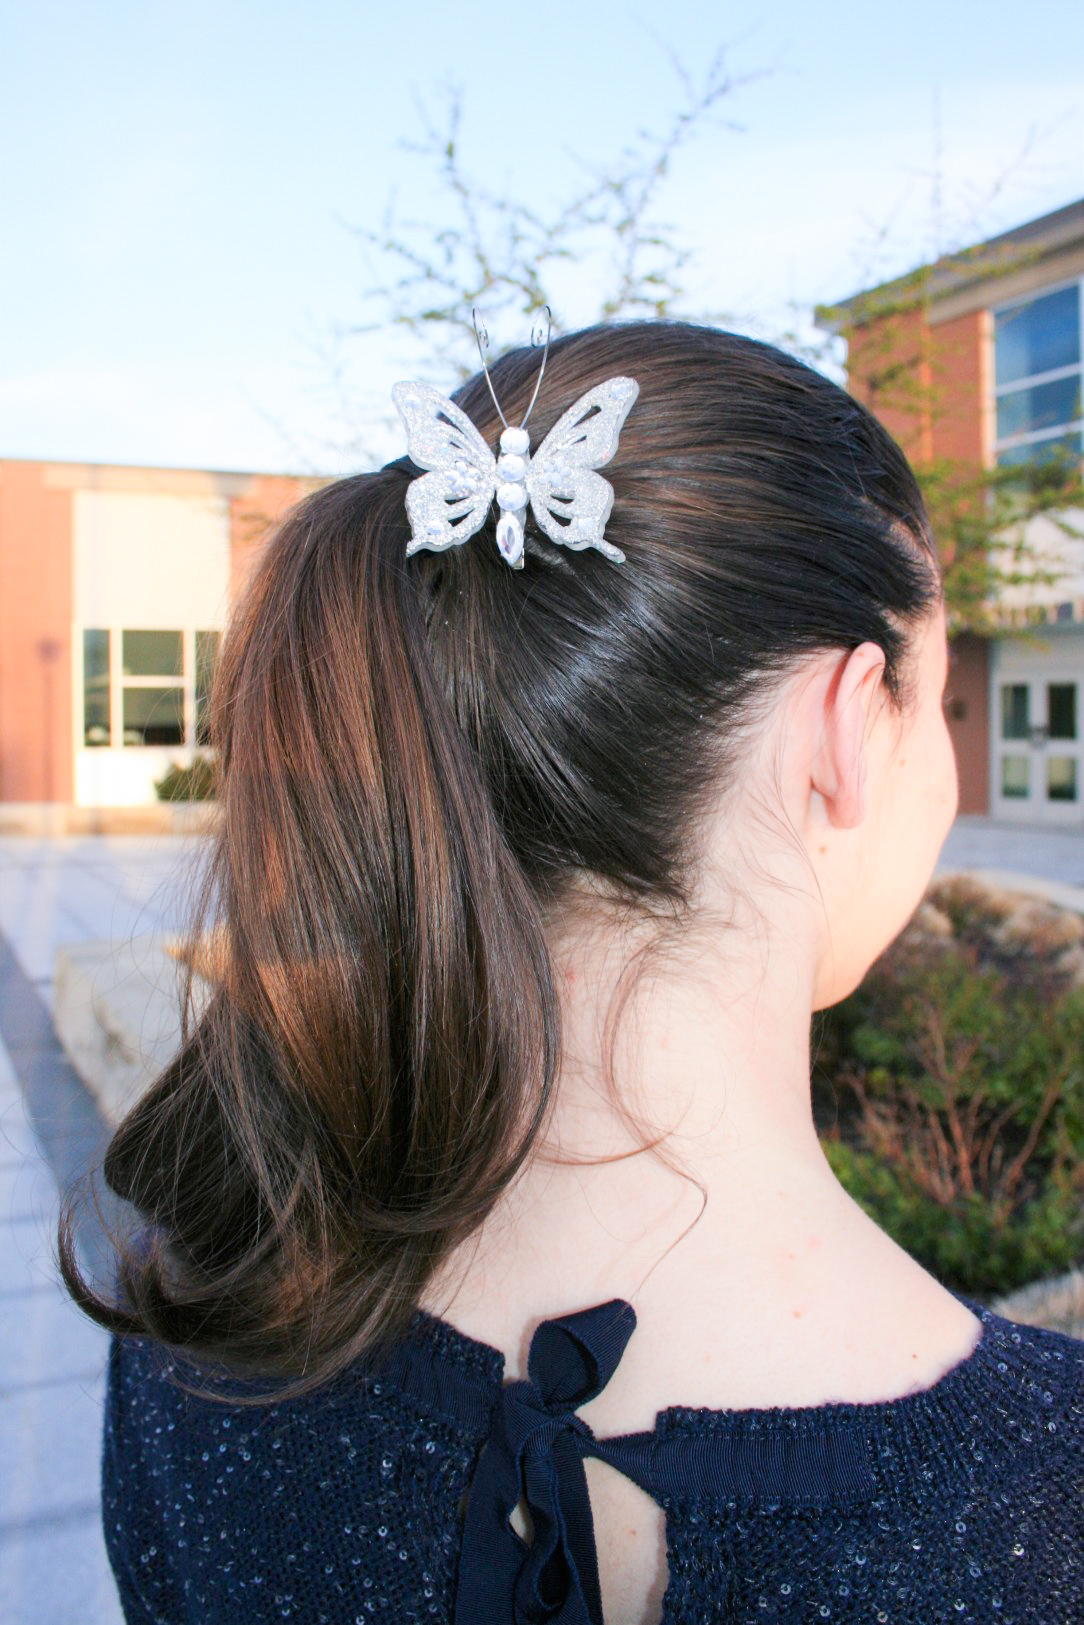 curly pony tail, butterfly hair clip, navy sweater